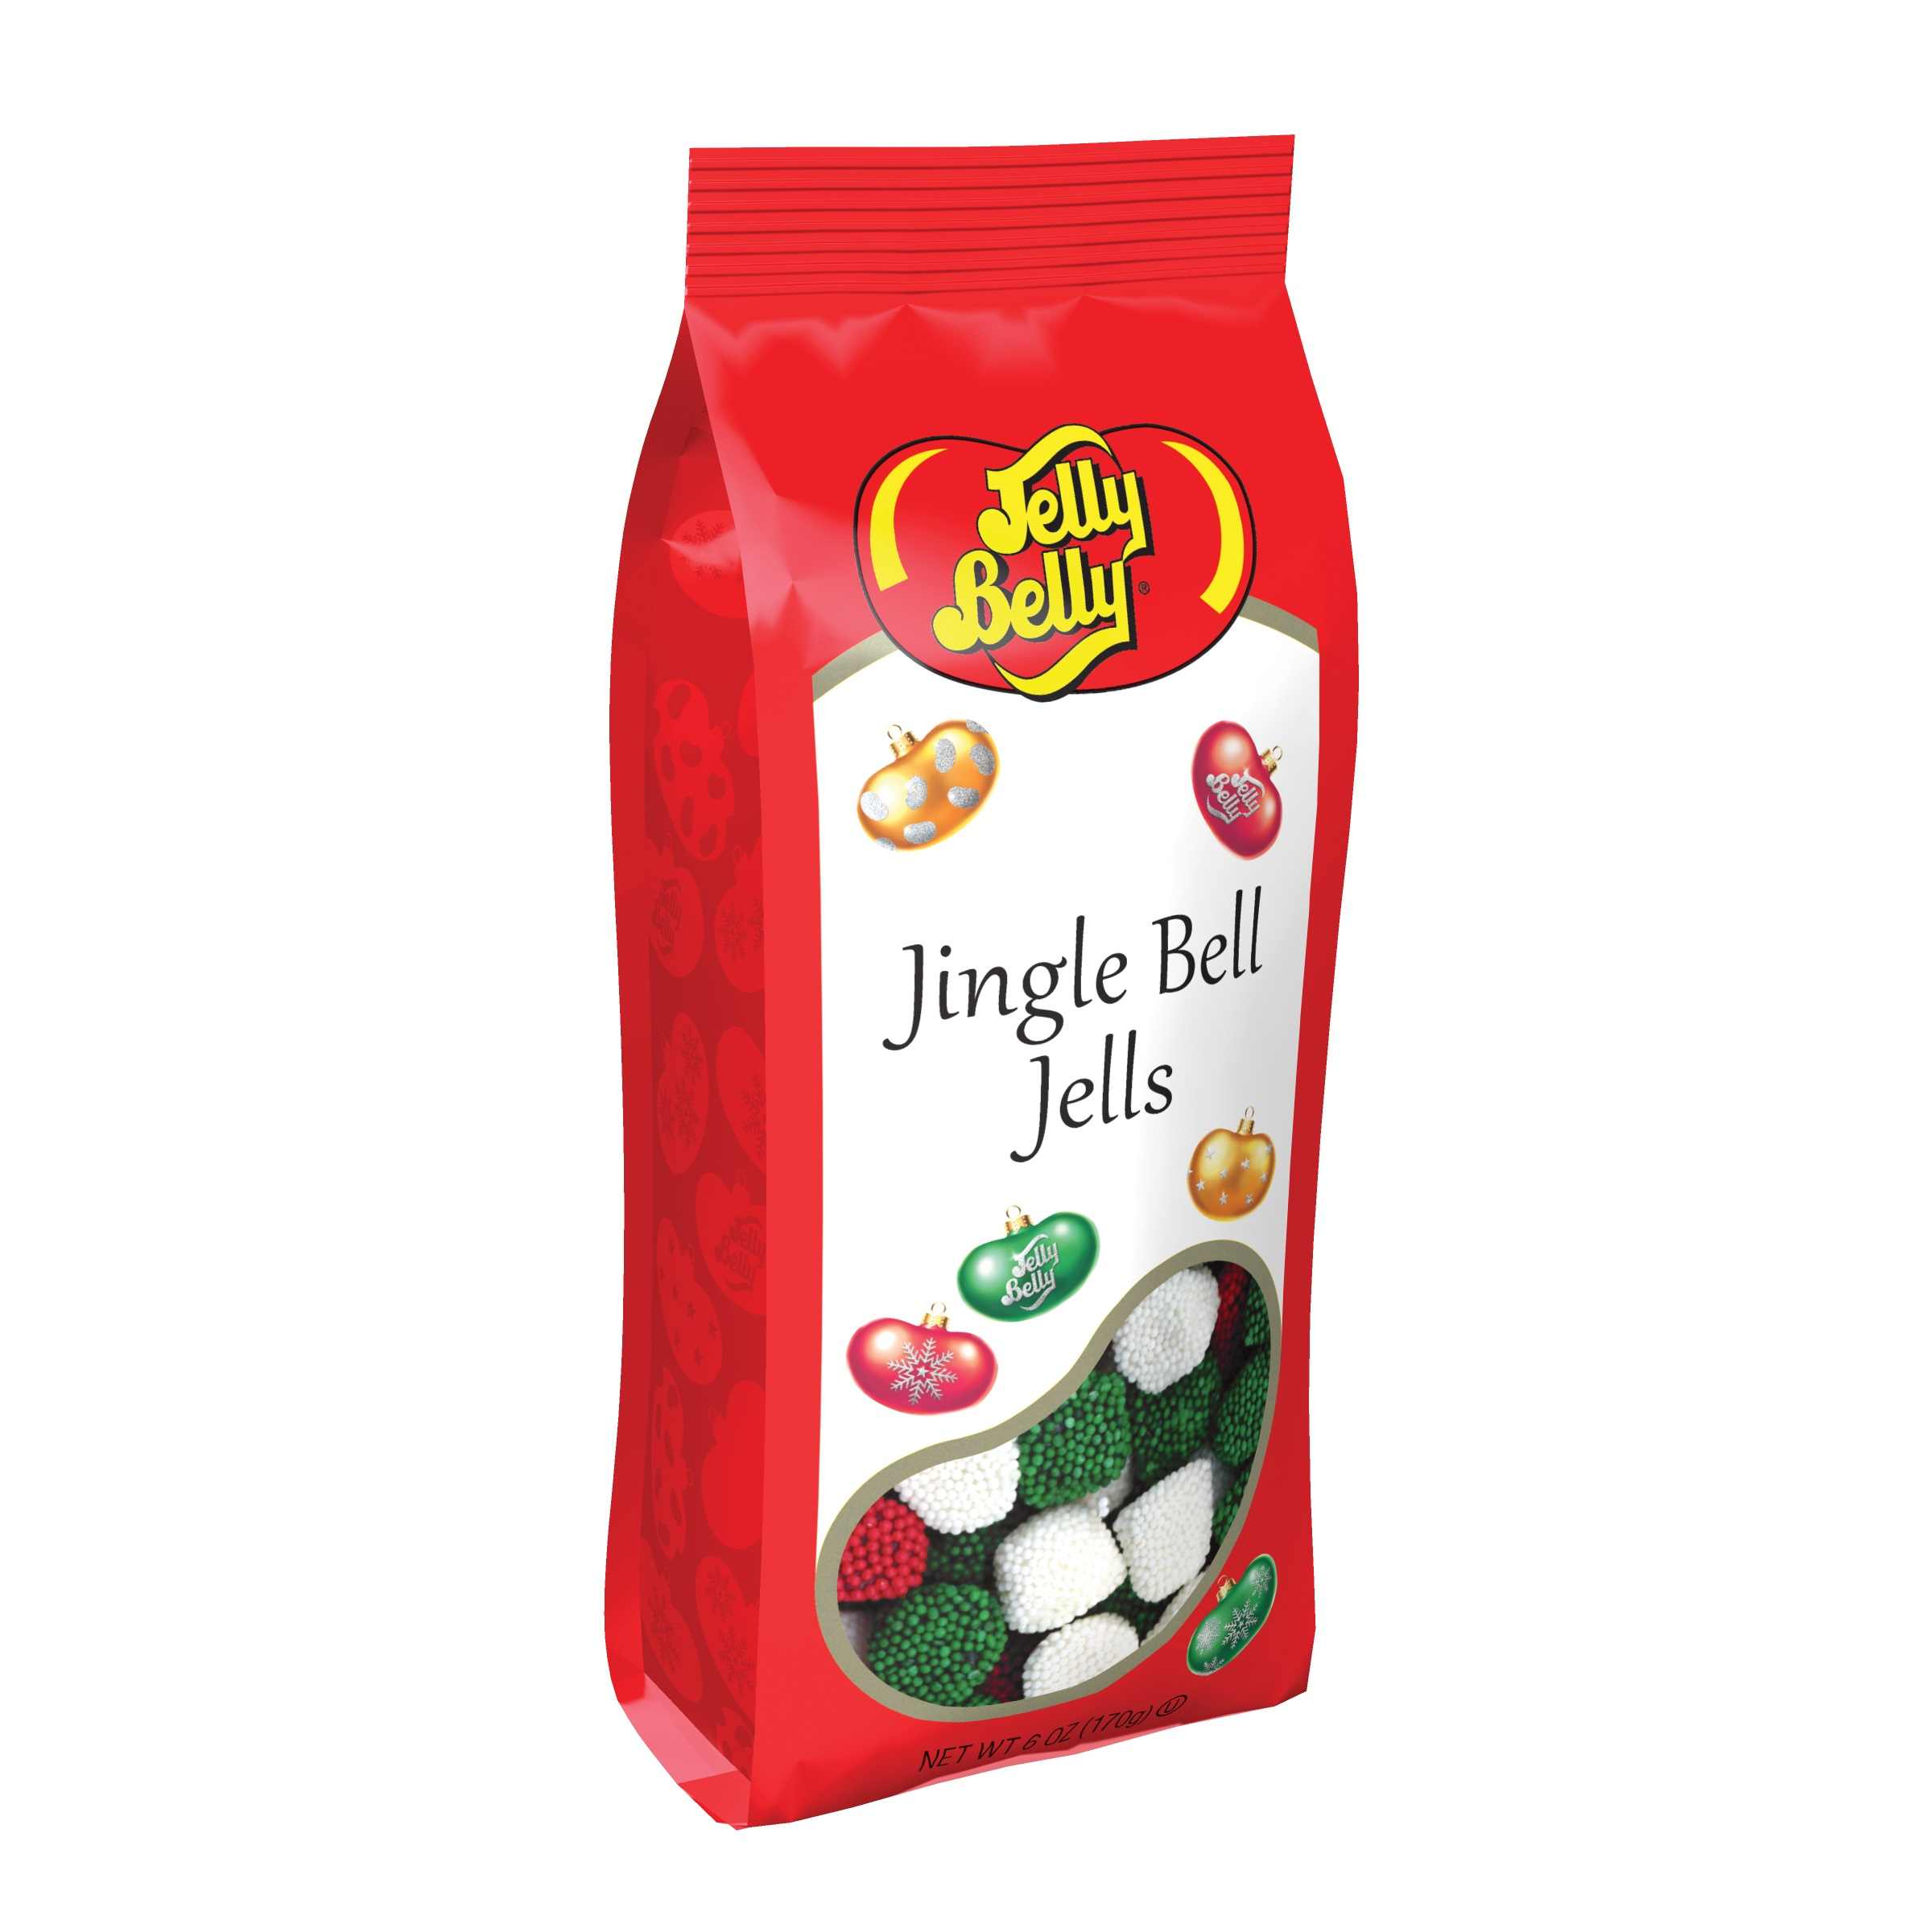 (G) 6 OZ JINGLE BELL JELLS BAGS -12 CT